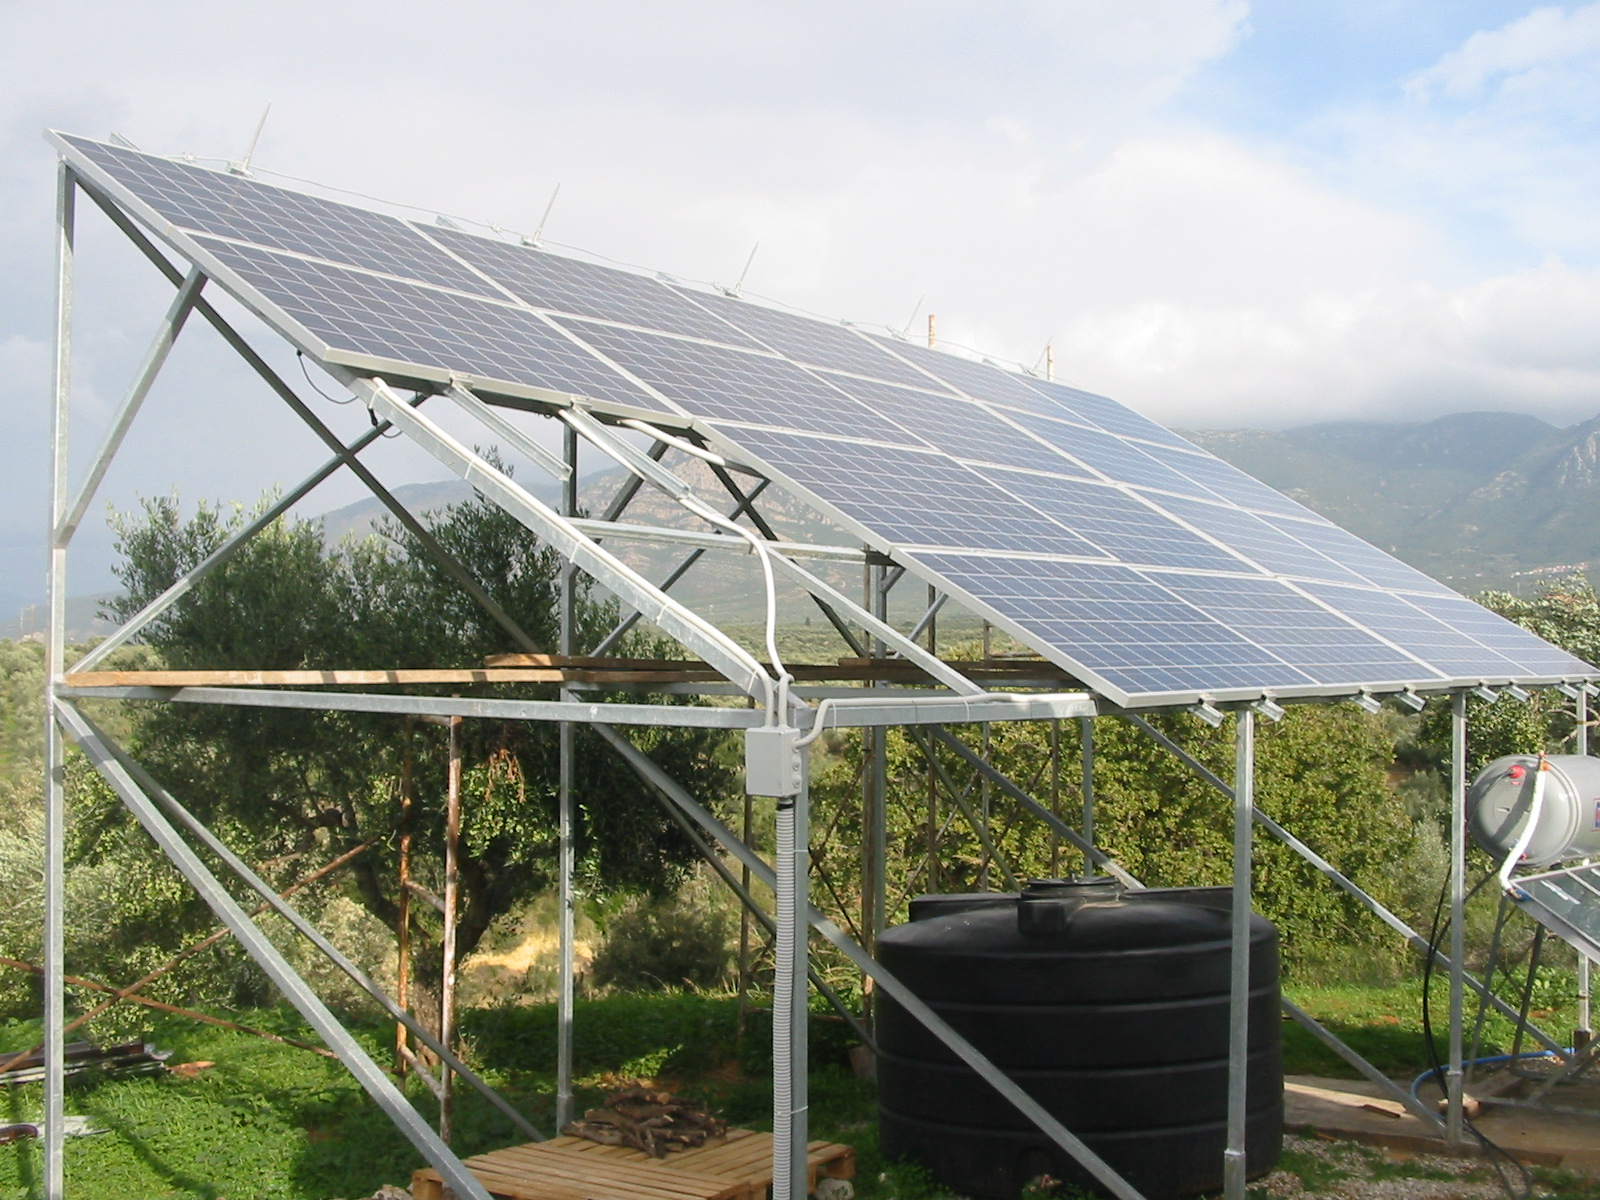 Photovoltaic installation in Filiatra